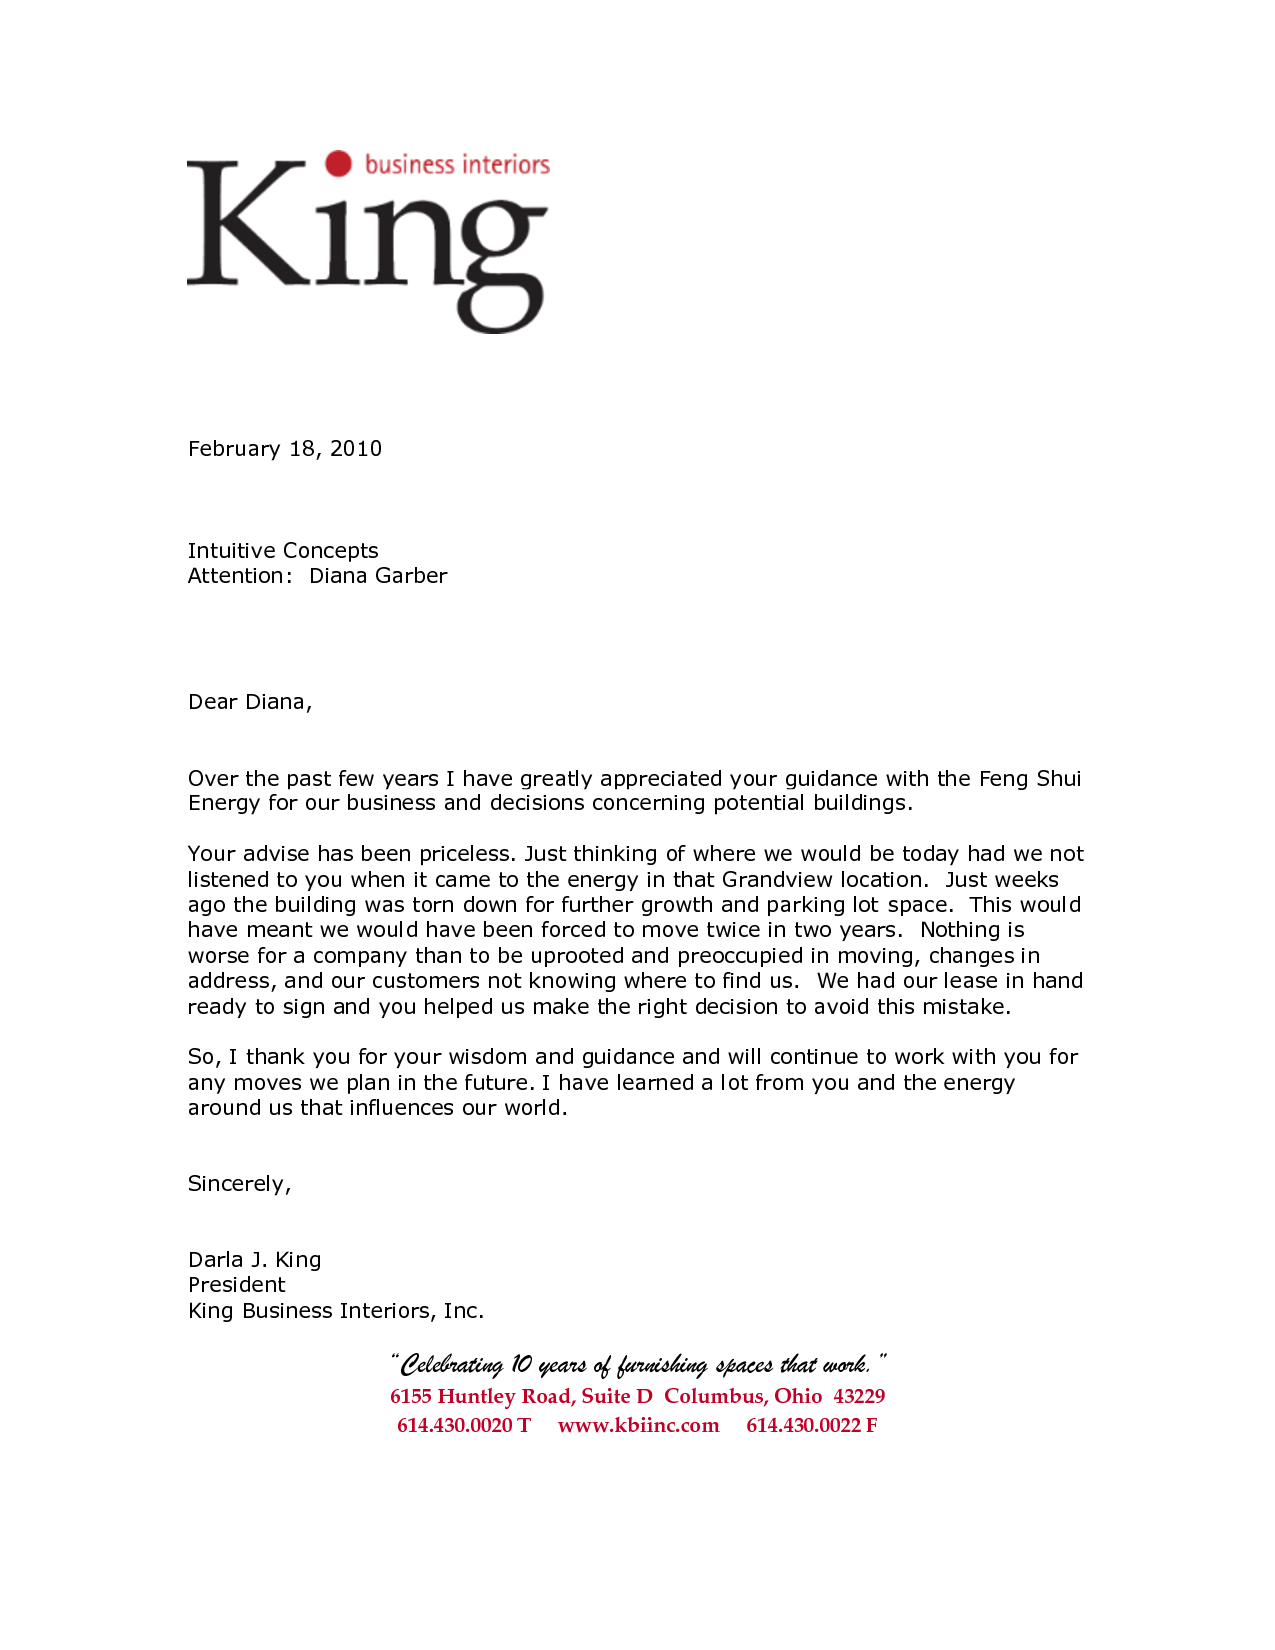 Letter of Recommendation Templates – Samples and Examples